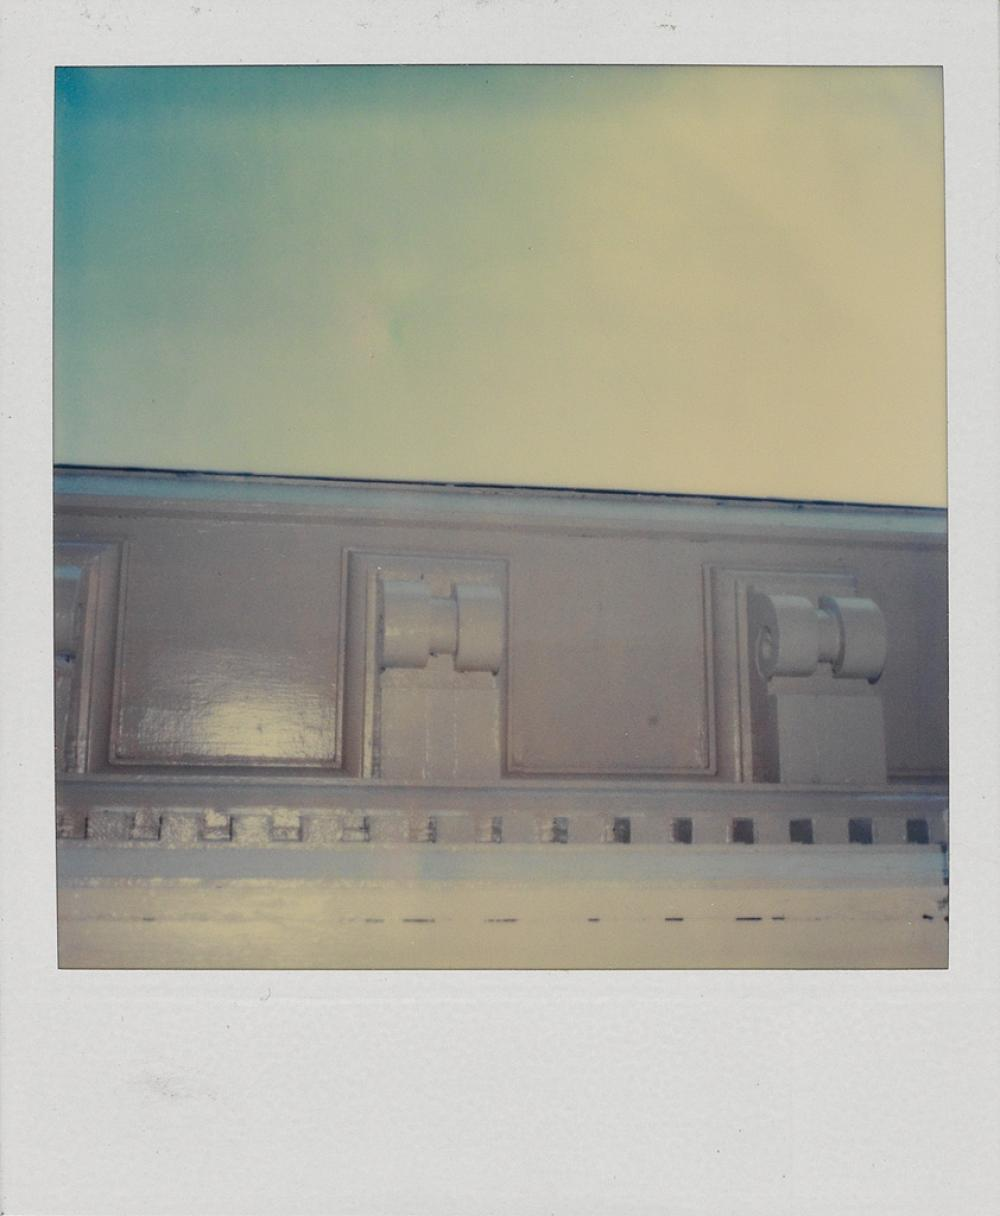 (POLAROIDS) A diverse group of 80 unique and intimate studies, several shot with a pinhole camera.